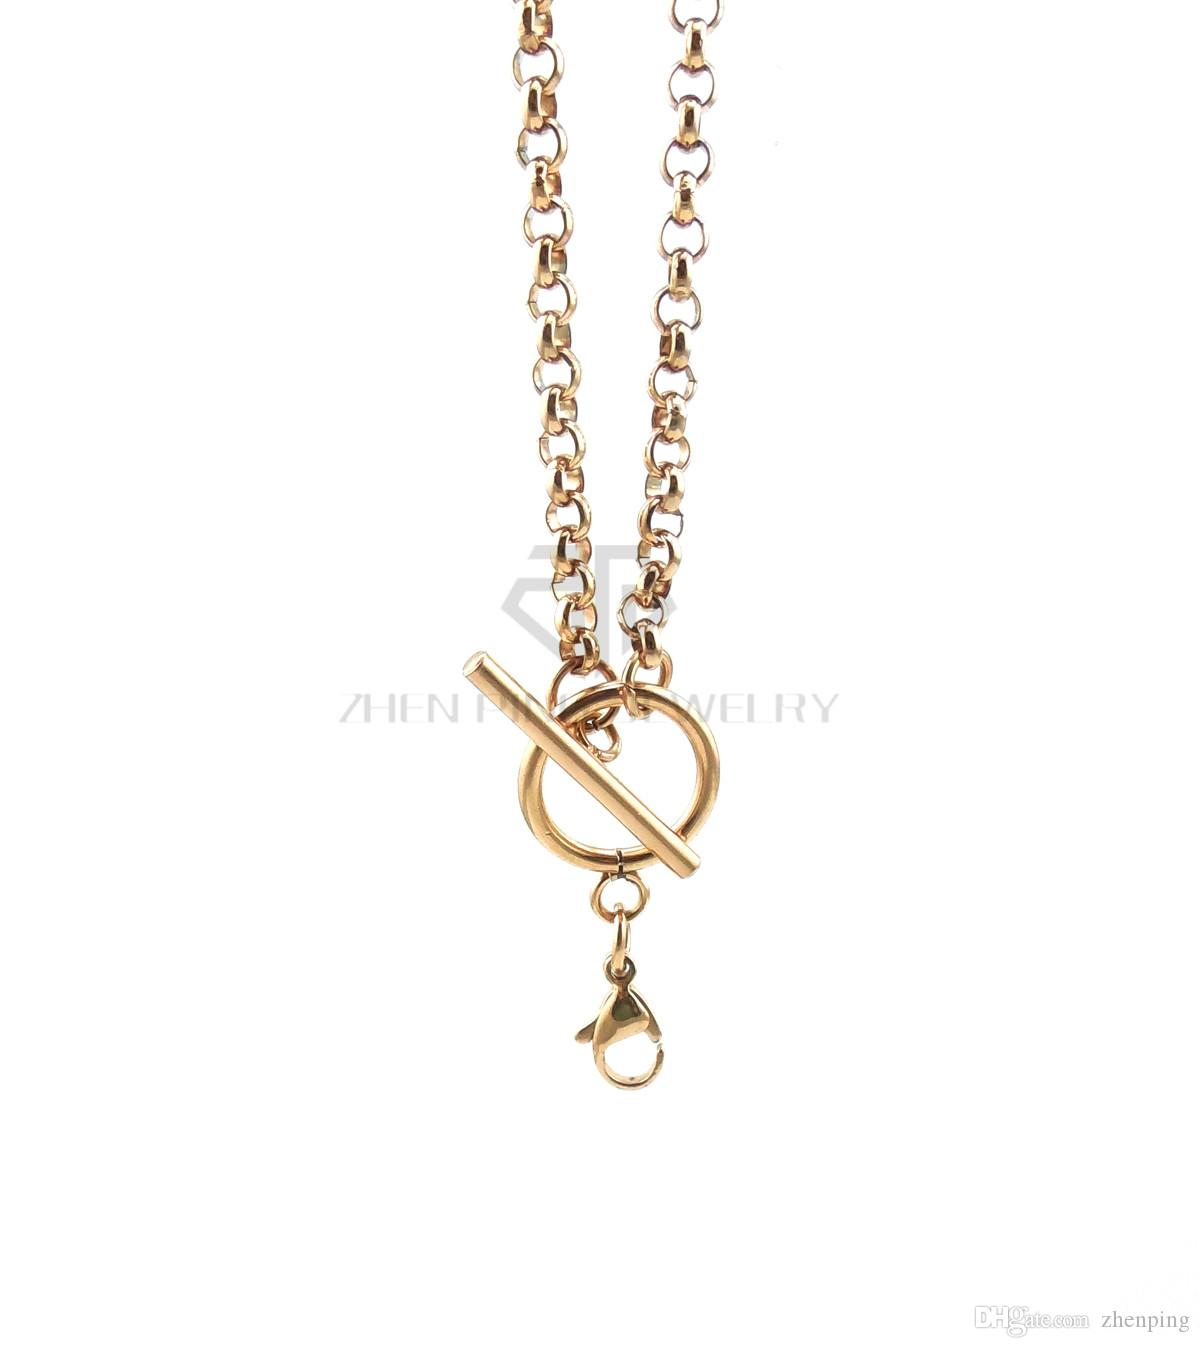 silver 4mm rolo chain 14-24 inch can be choose stainless steel rolo chain with toggle and lobster clasp